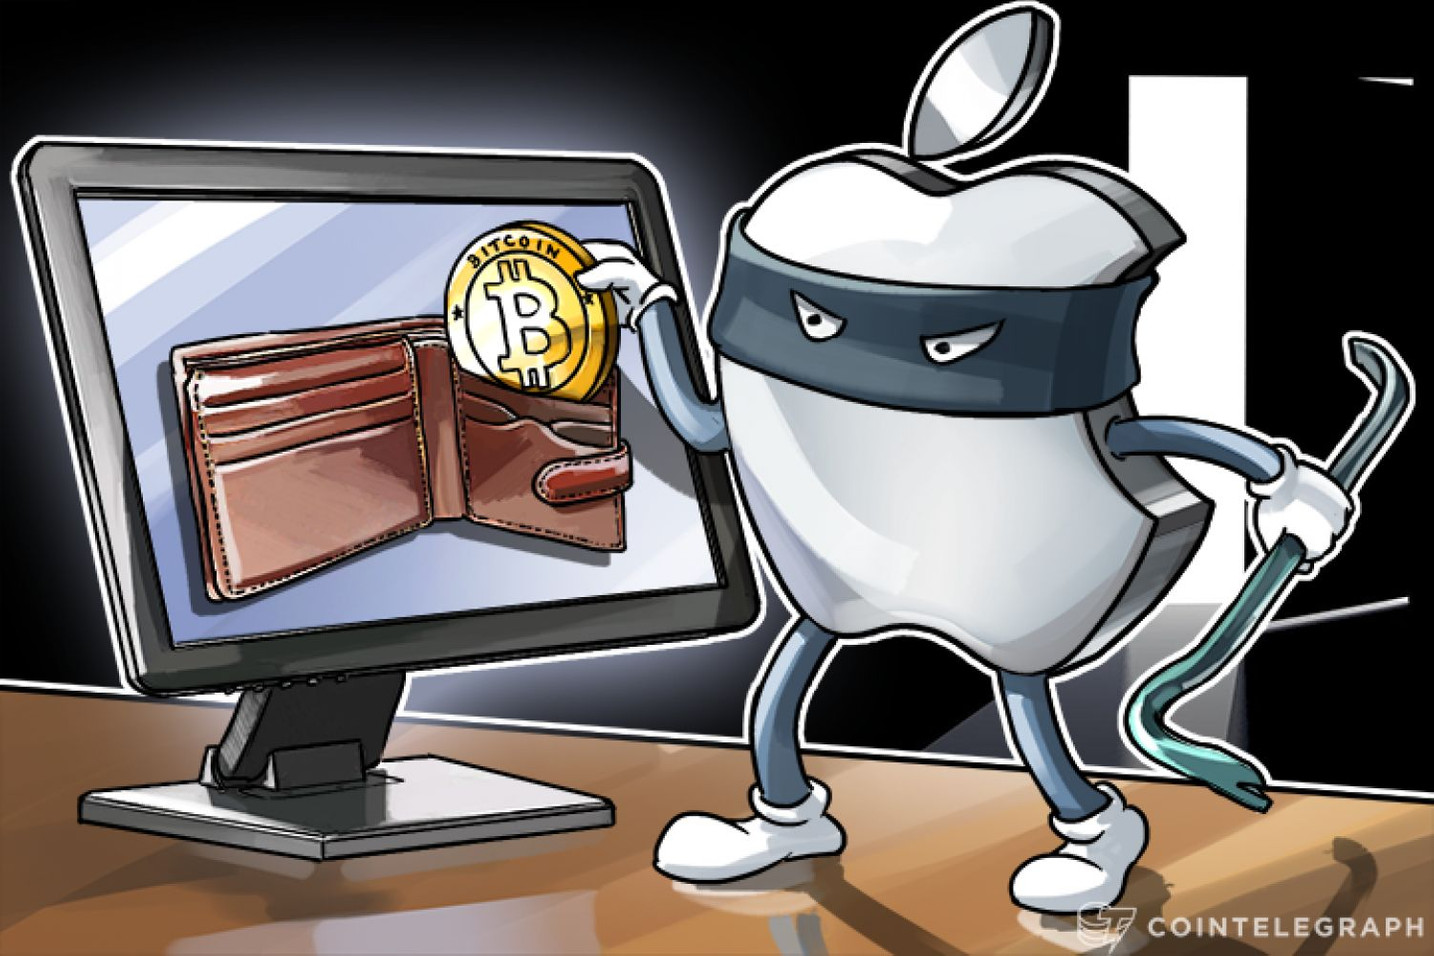 Apple Co-Founder Steve Wozniak Took Interest in Bitcoin When It Was Still Priced at $700